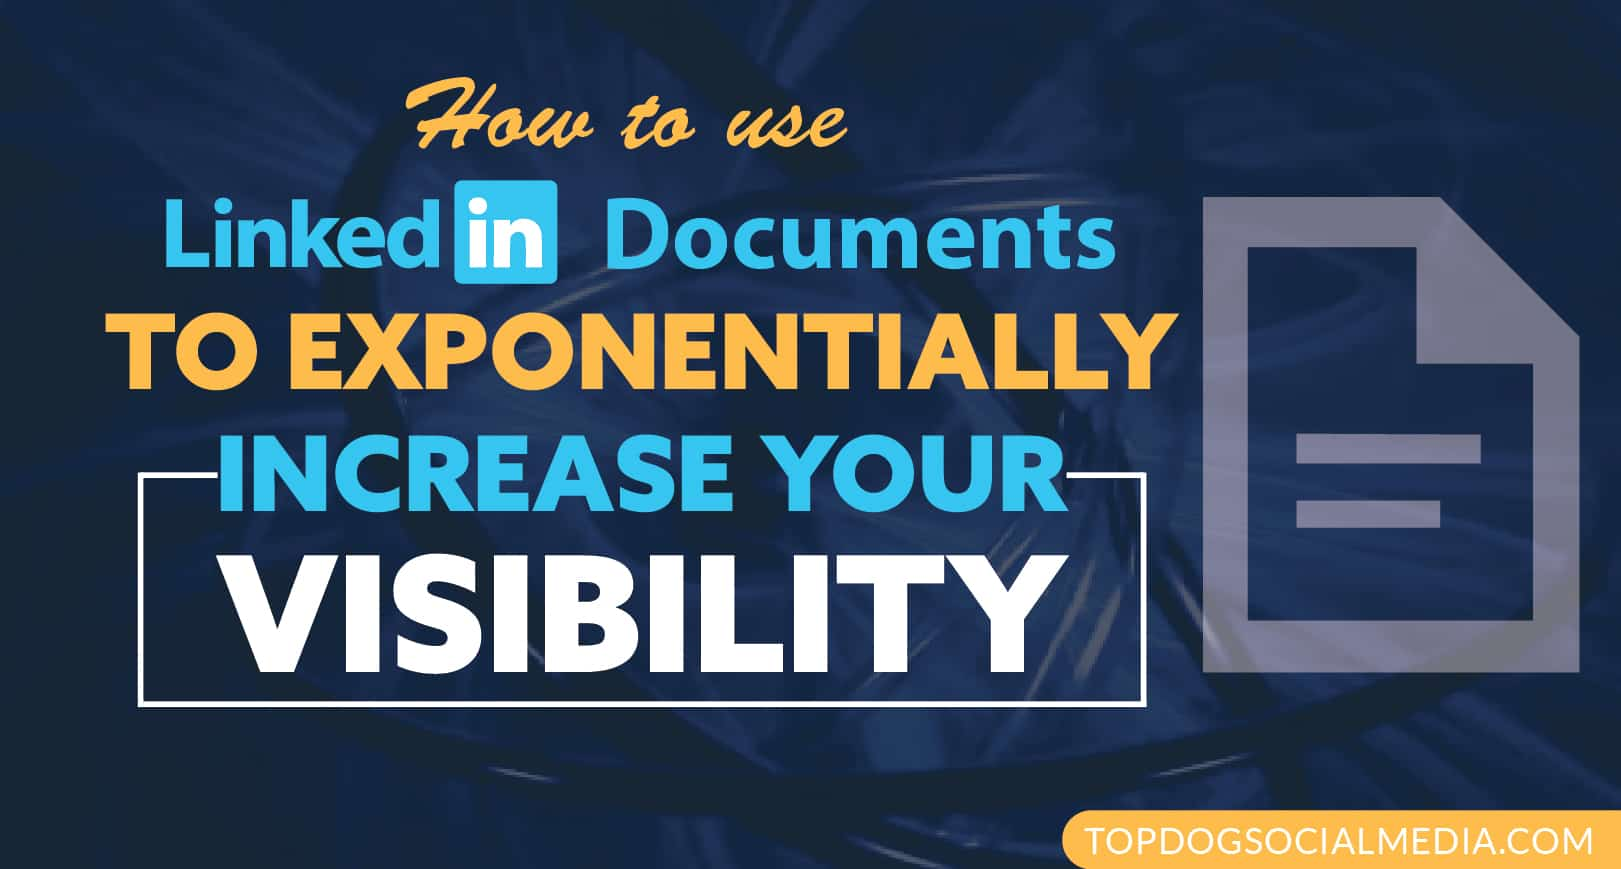 How to Use LinkedIn Documents to Exponentially Increase Your Visibility